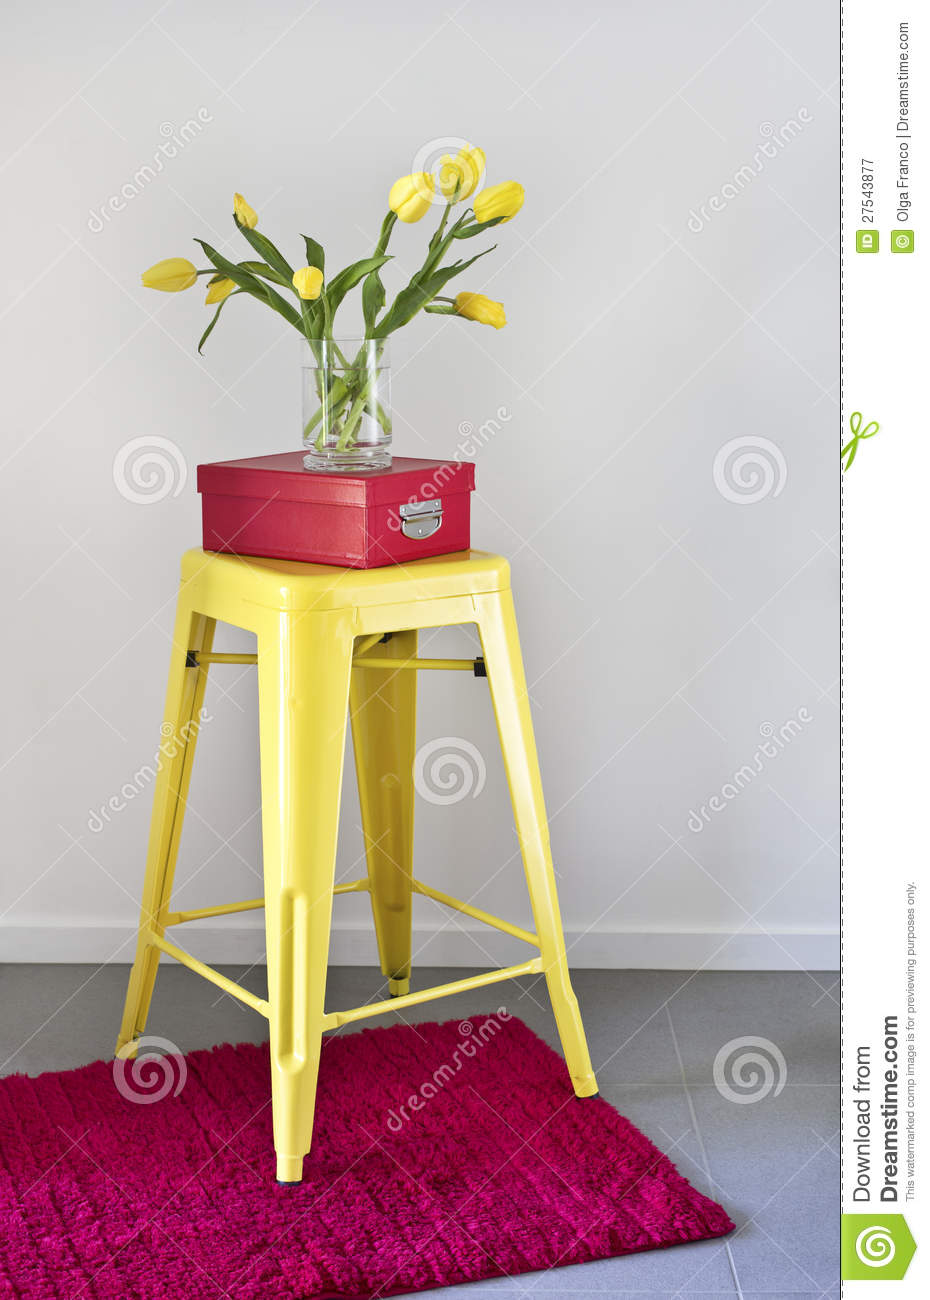 Yellow industrial stool and red rug